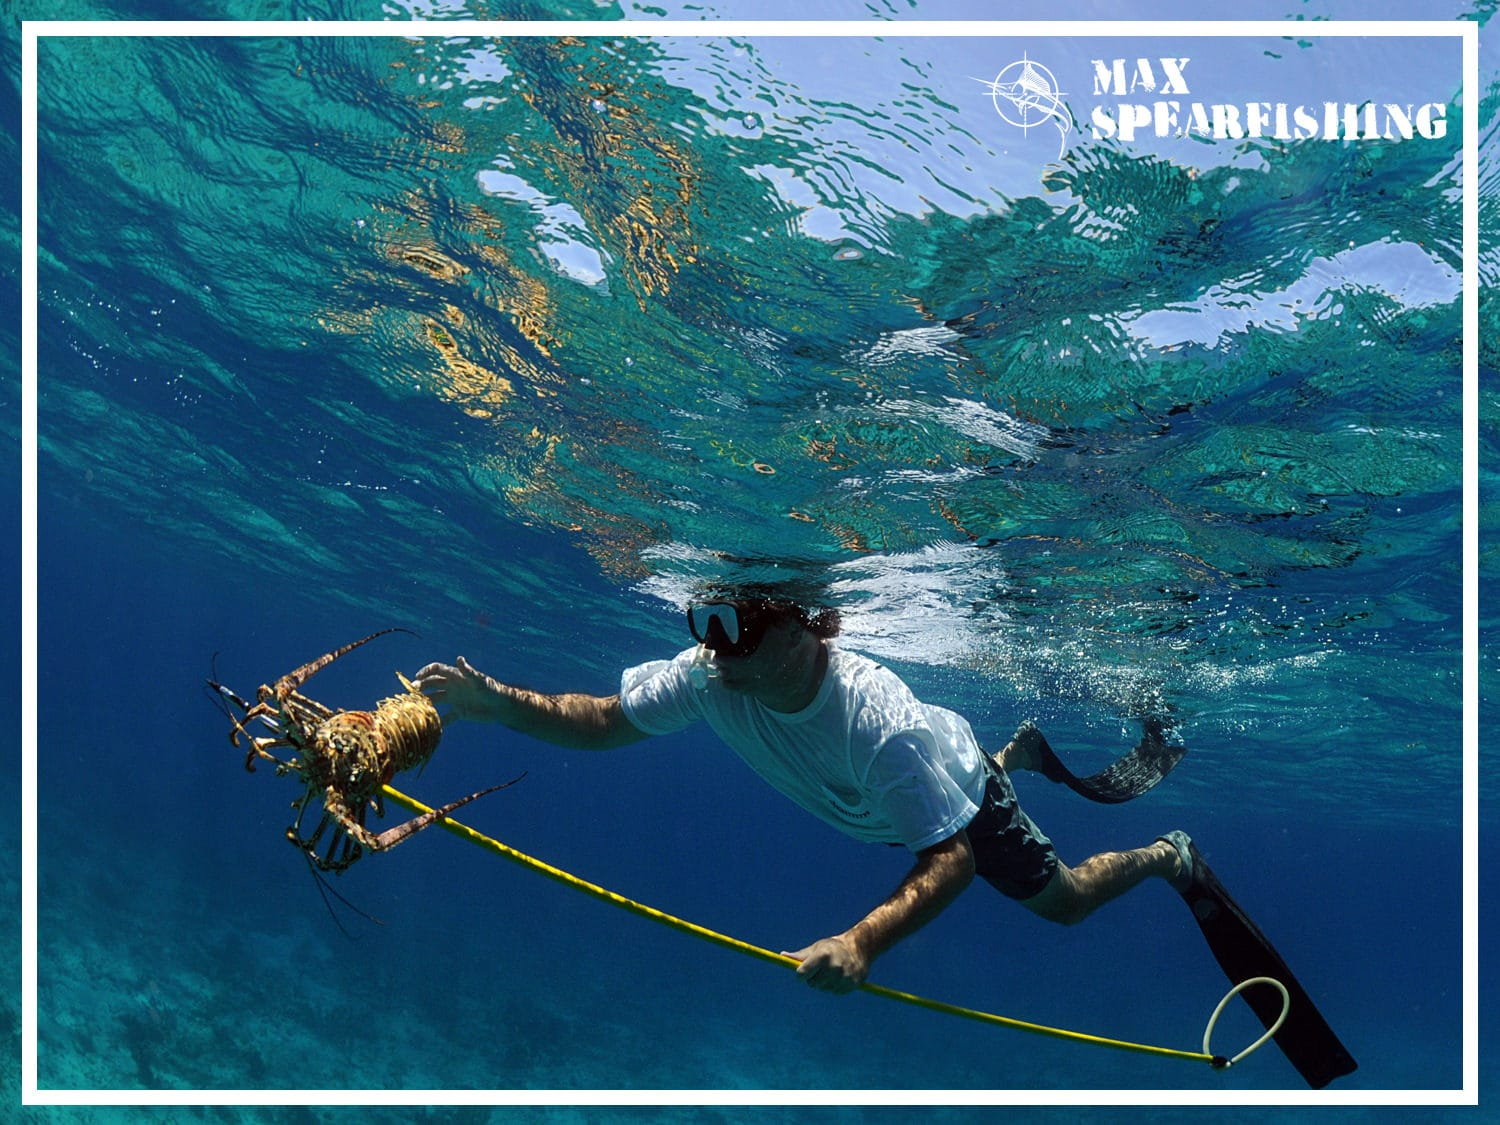 best pole spear for spearfishing bahamas